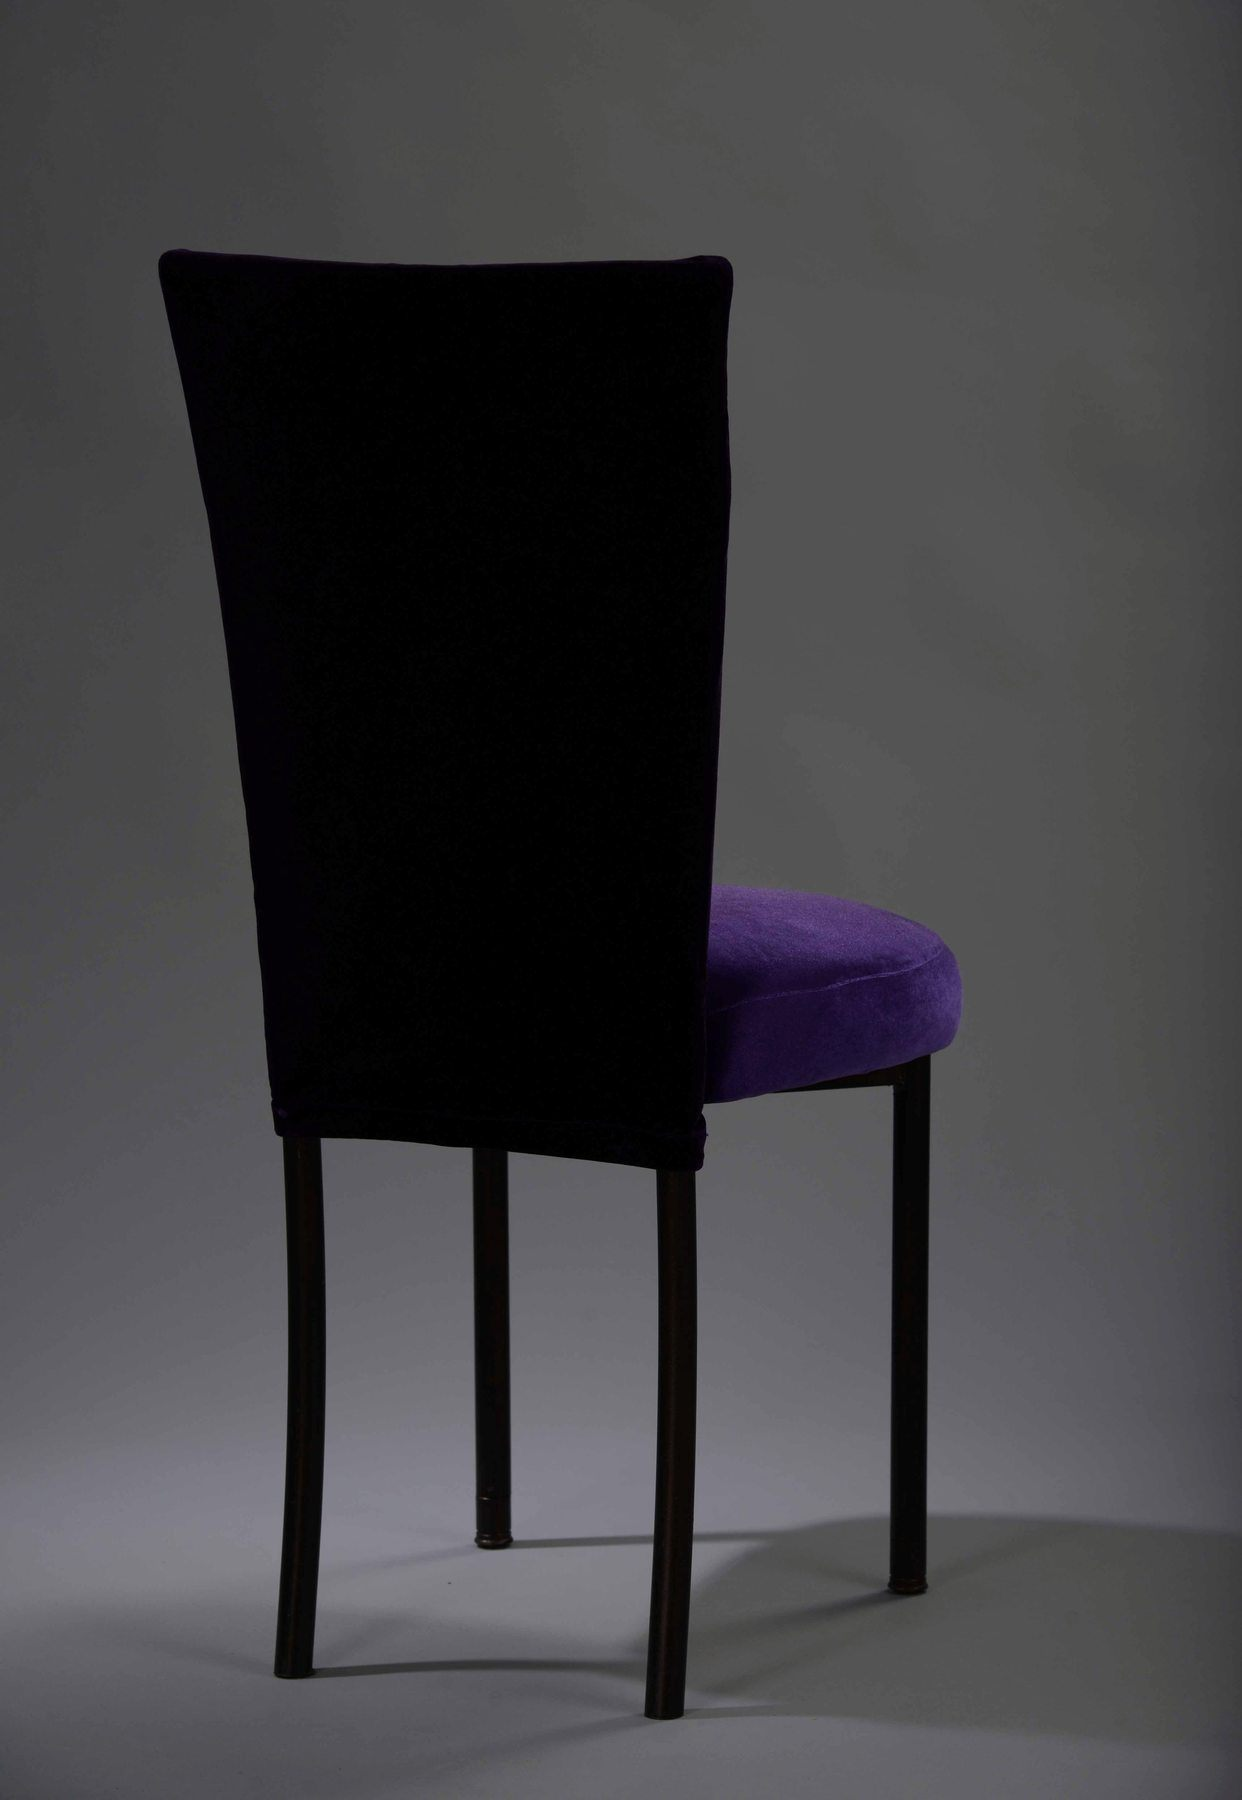 rent chair covers in chicago chairs 4 less purple velvet chameleon  cover nüage designs